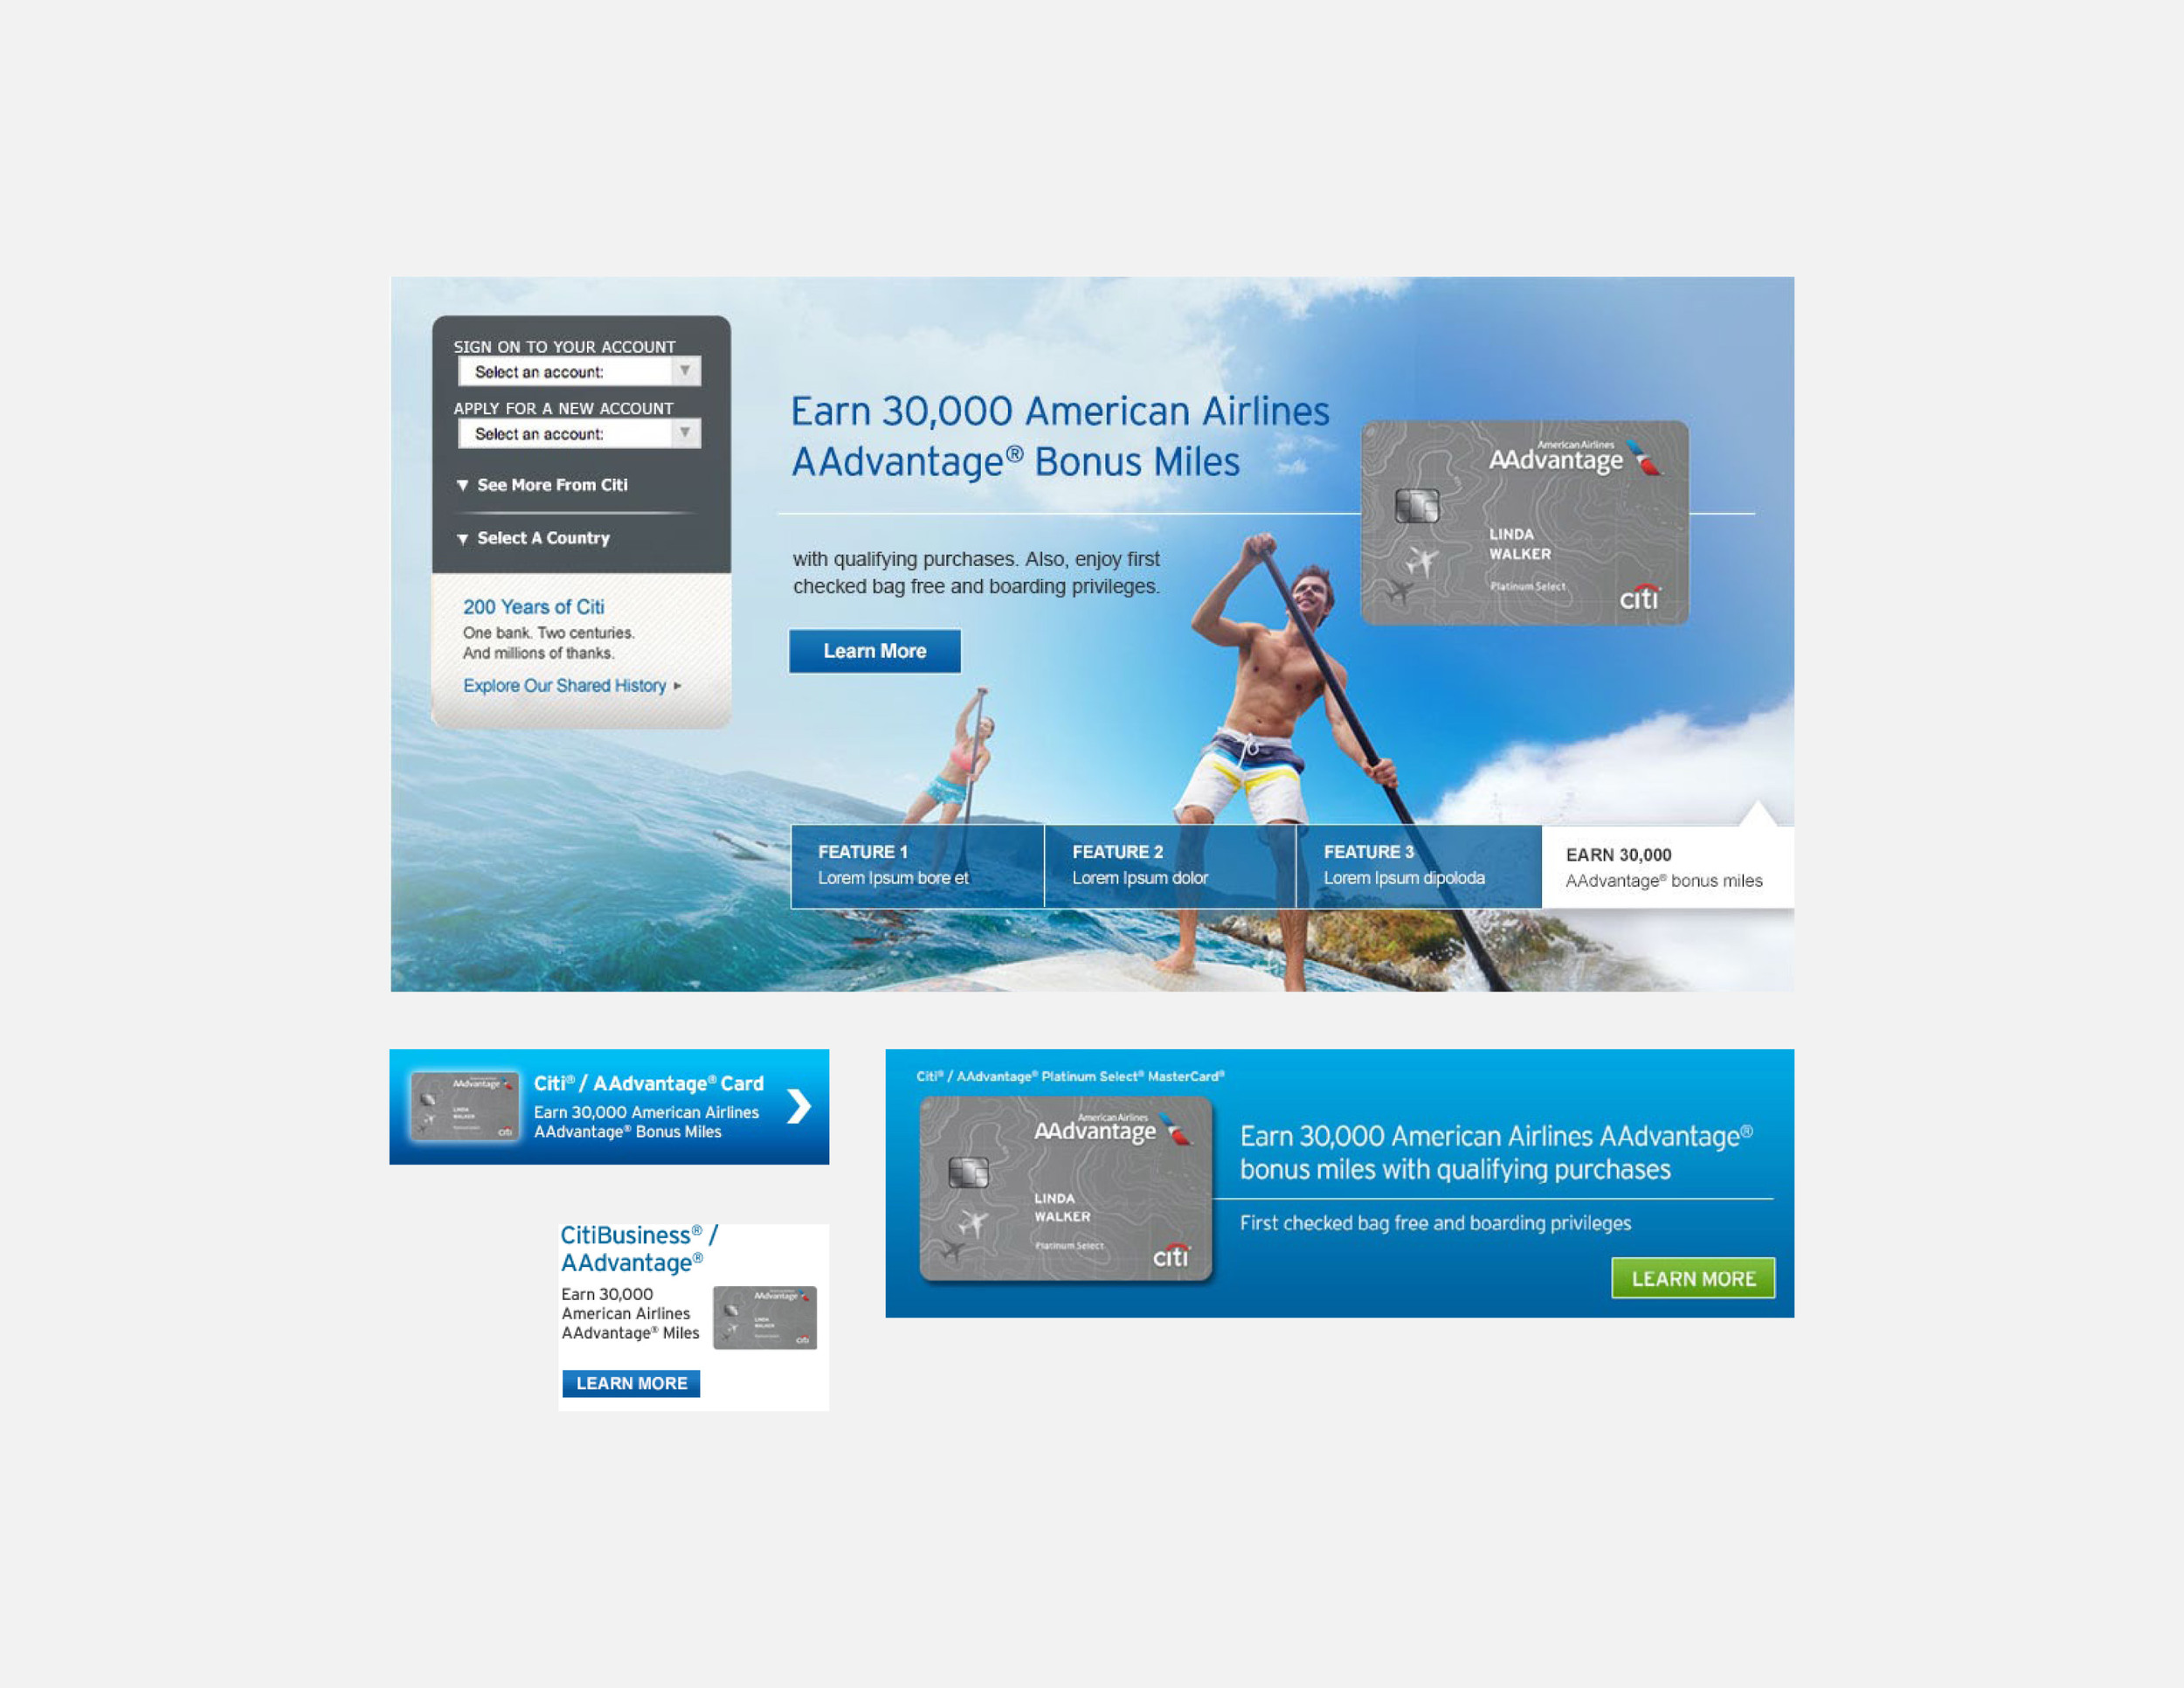 Citi websites and marketing banners